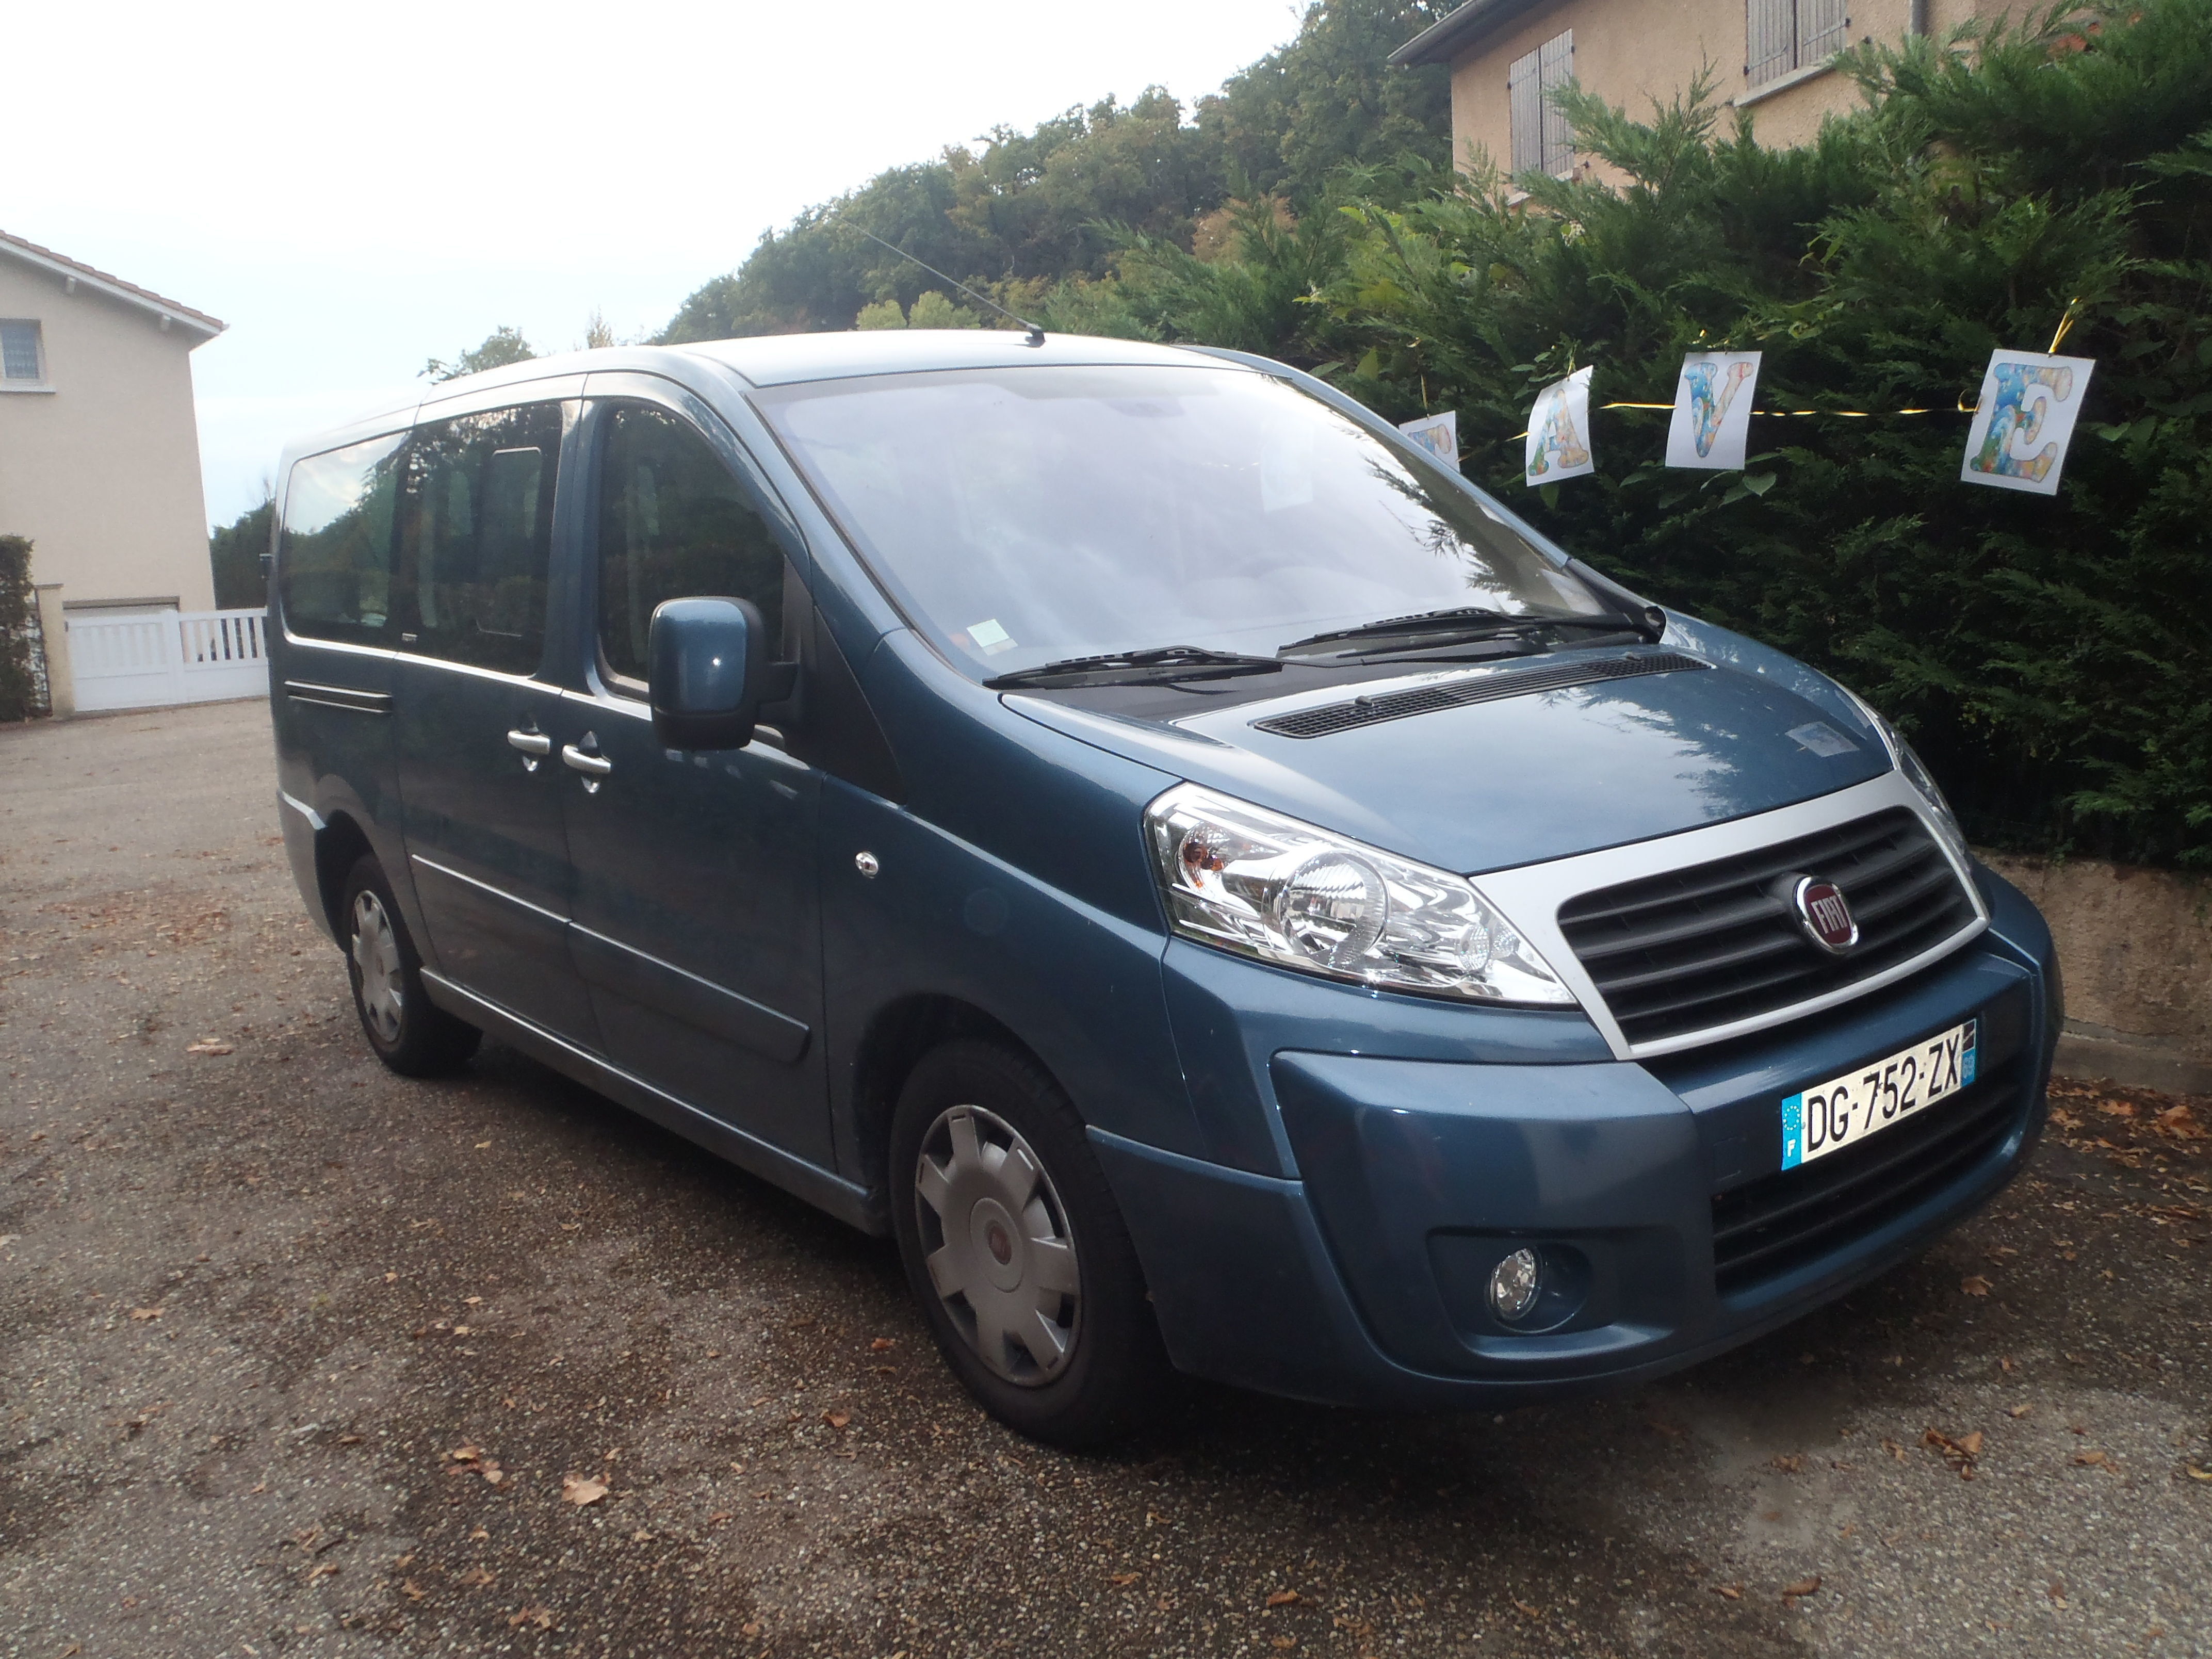 Fiat Scudo Panorama, 2014, Diesel, 9 places et plus